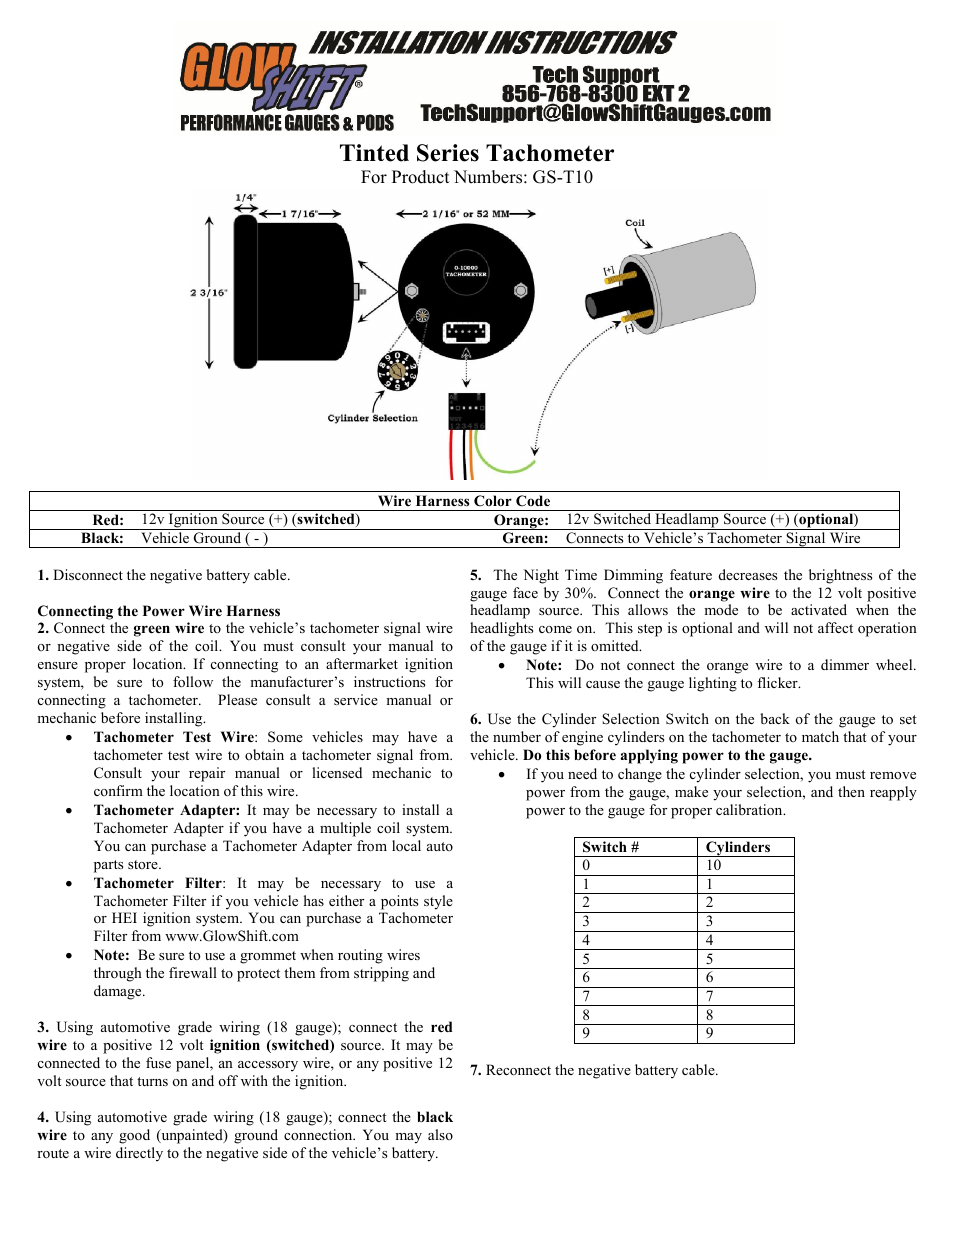 Glowshift 2 tachometer gauge user manual 2 pages sciox Images